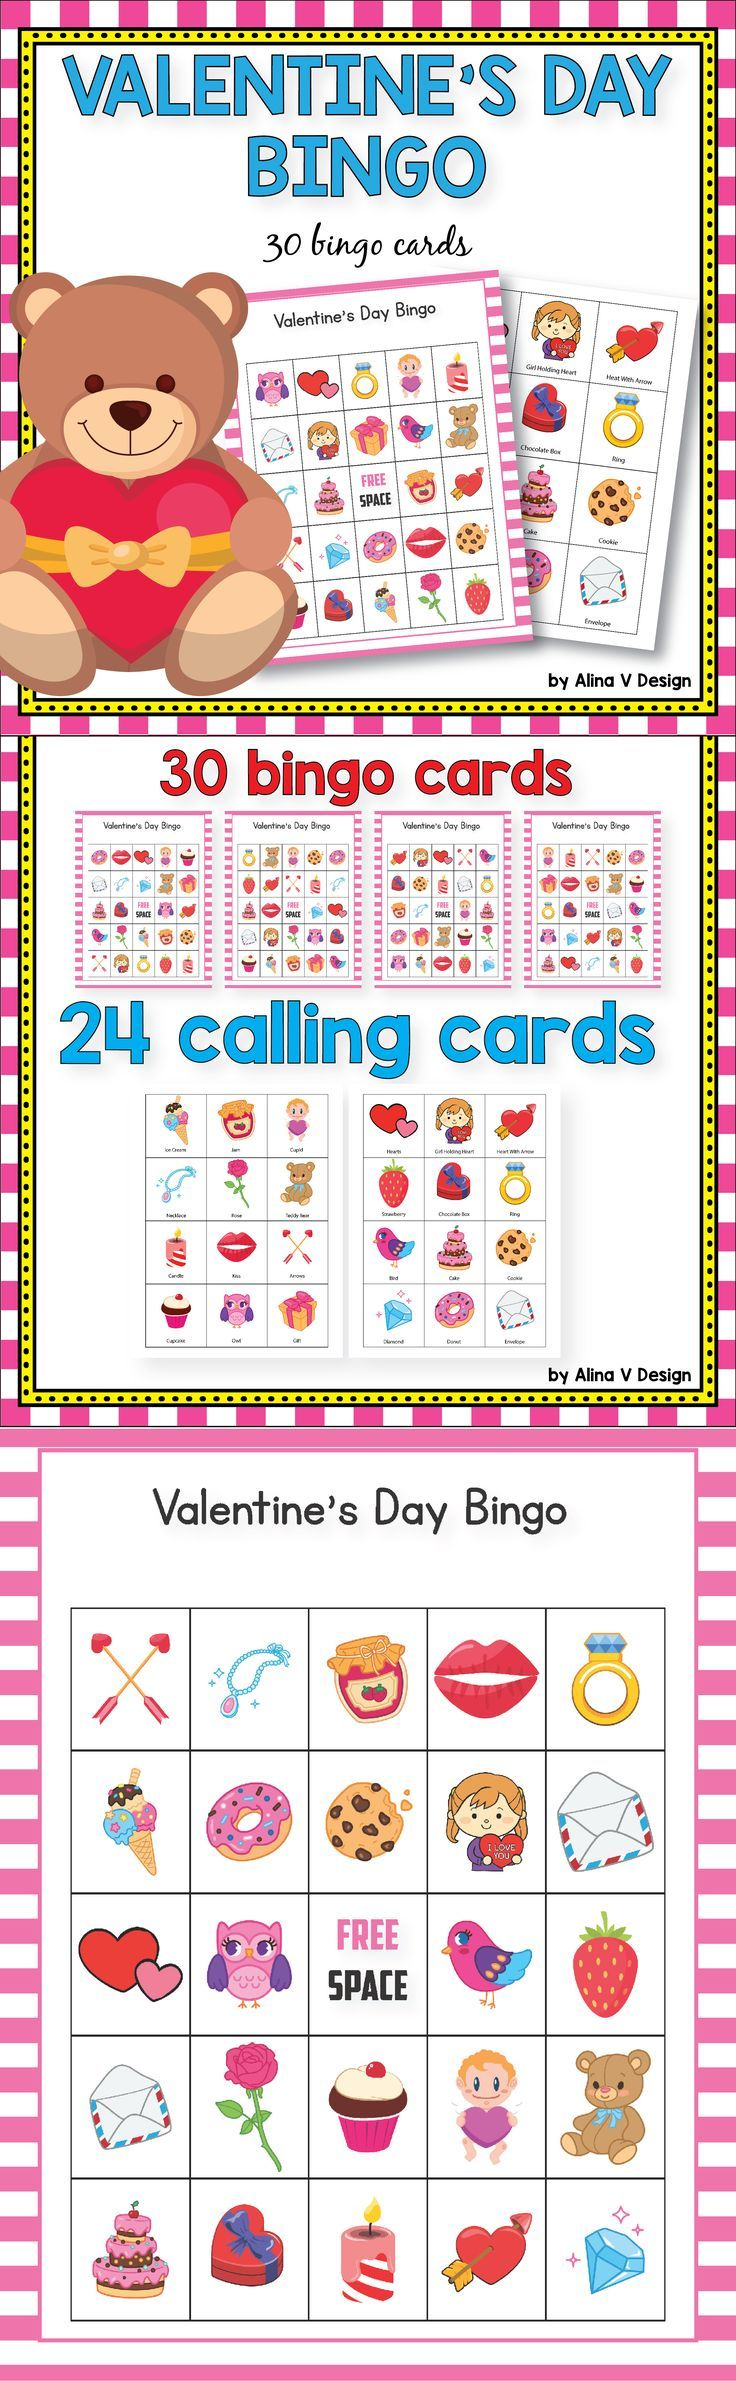 The 25 best elements card game ideas on pinterest chemistry valentines day bingo game february bingo gamestrikefo Gallery